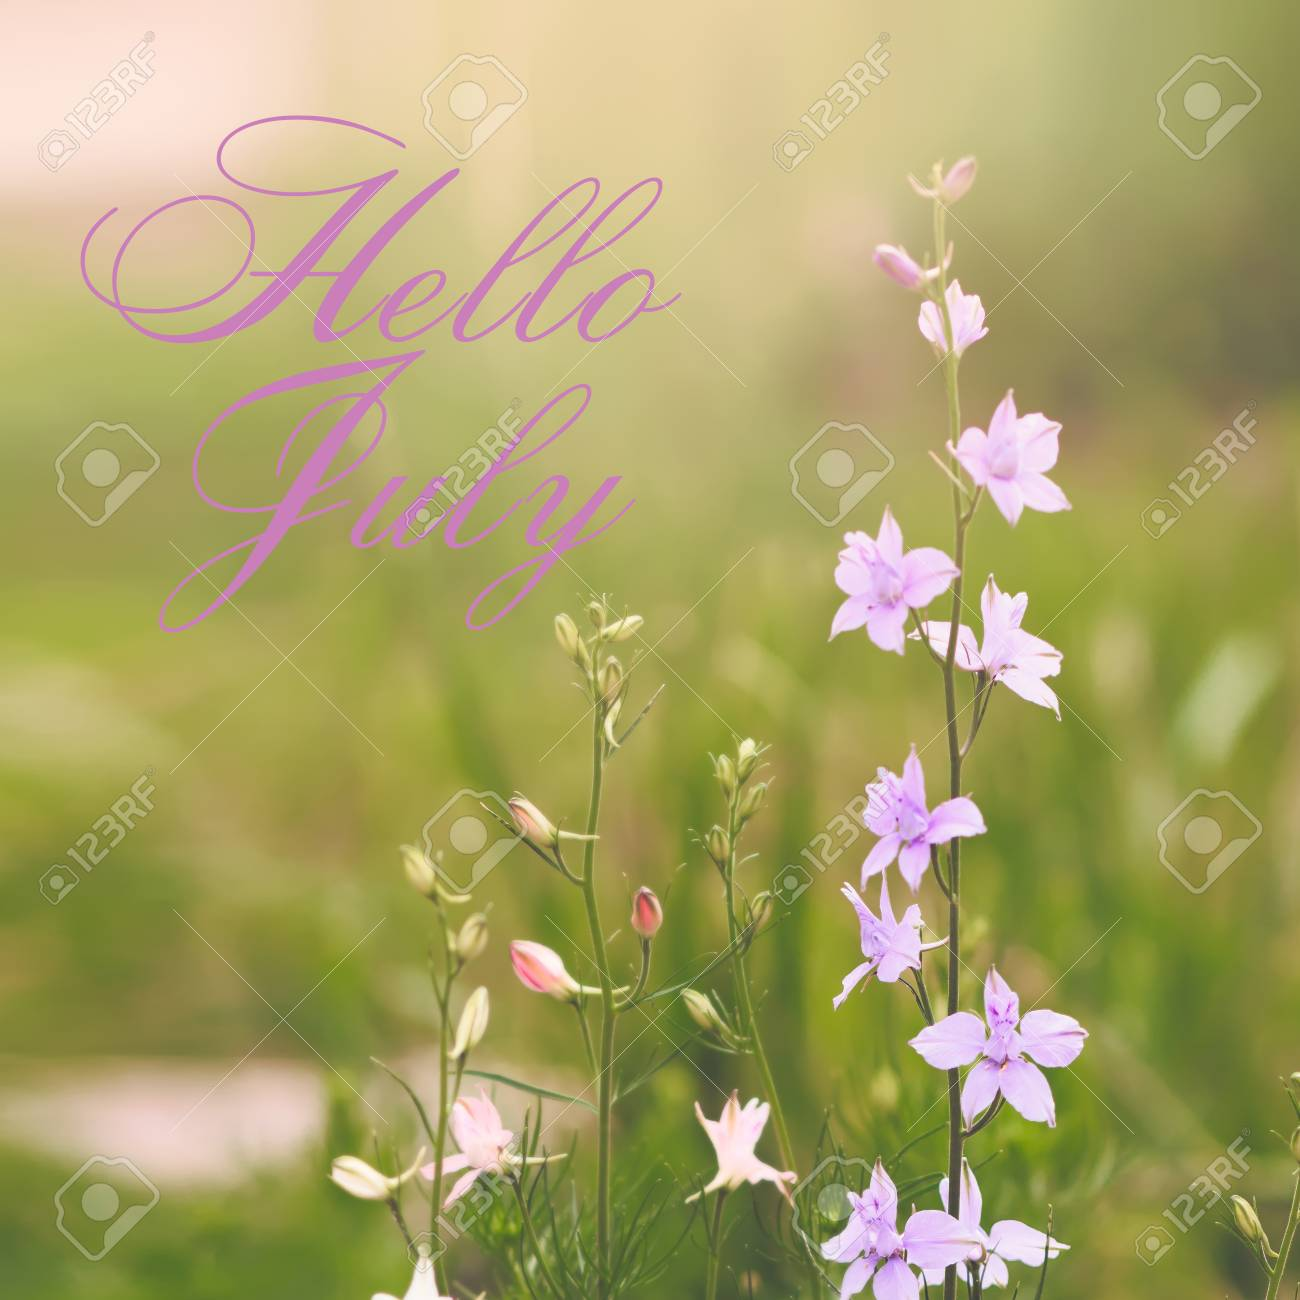 Hello July Greeting Card With Flowers In Background Stock Photo   80545775